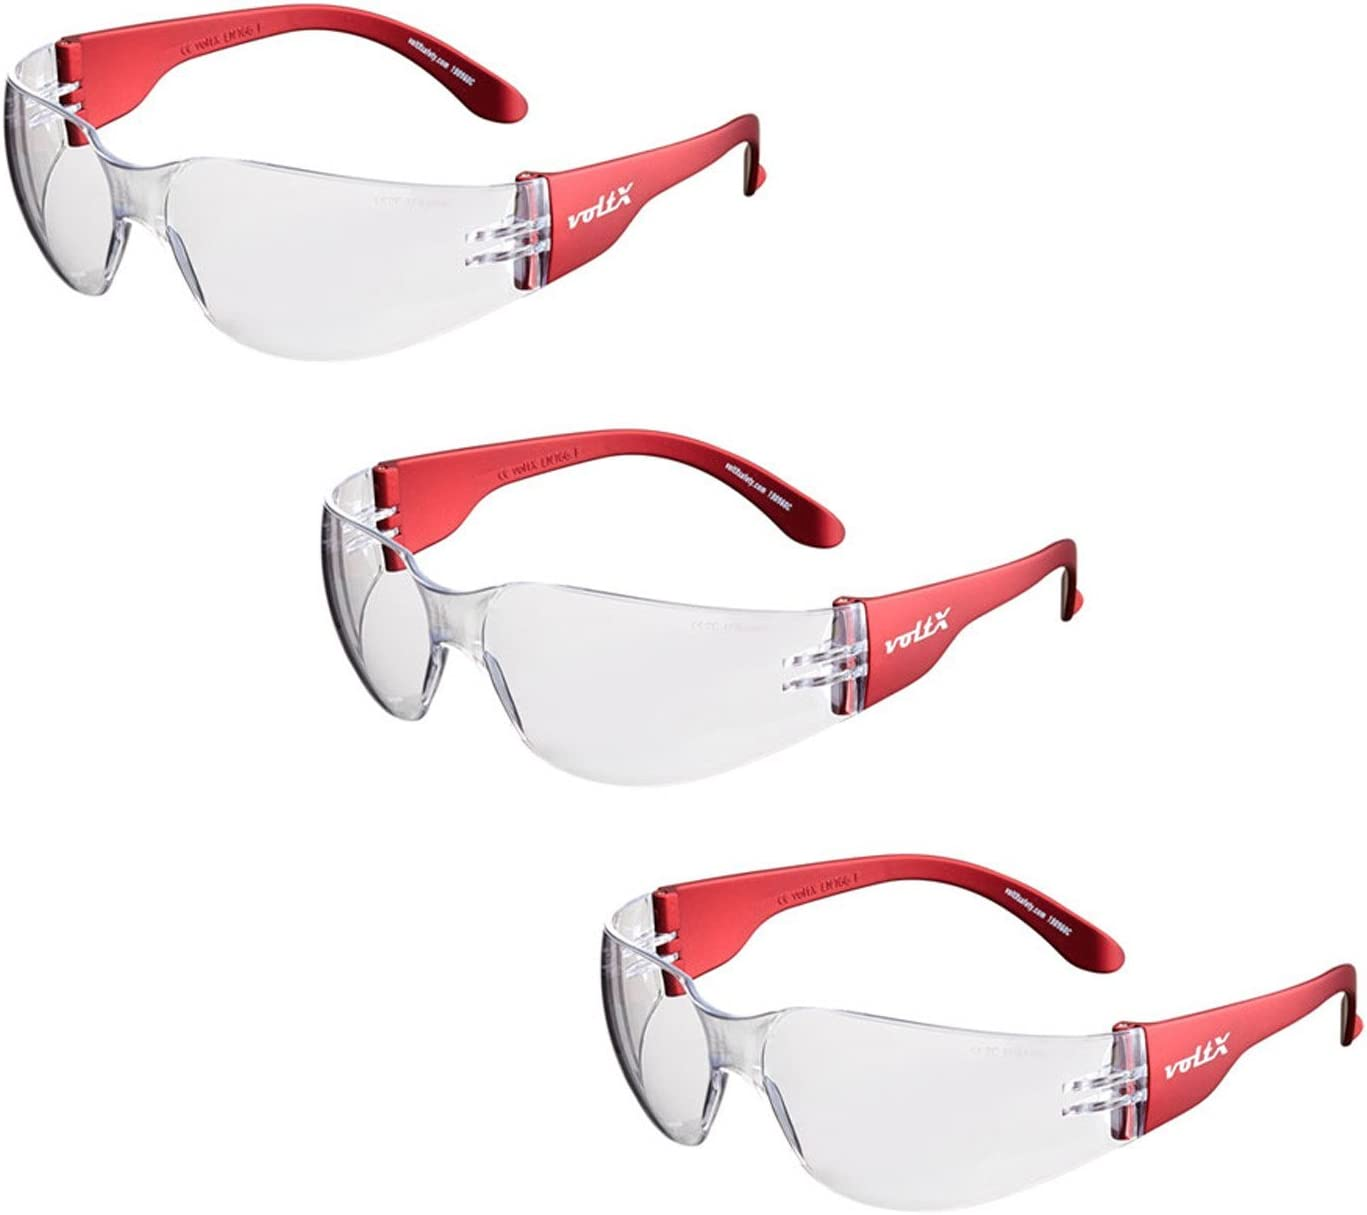 3 x voltX /'GRAFTER/' Bifocal Lightweight Industrial Reading Safety Glasses Clear Lens +1.0 CE EN166f Certified//Cycling Safety Glasses